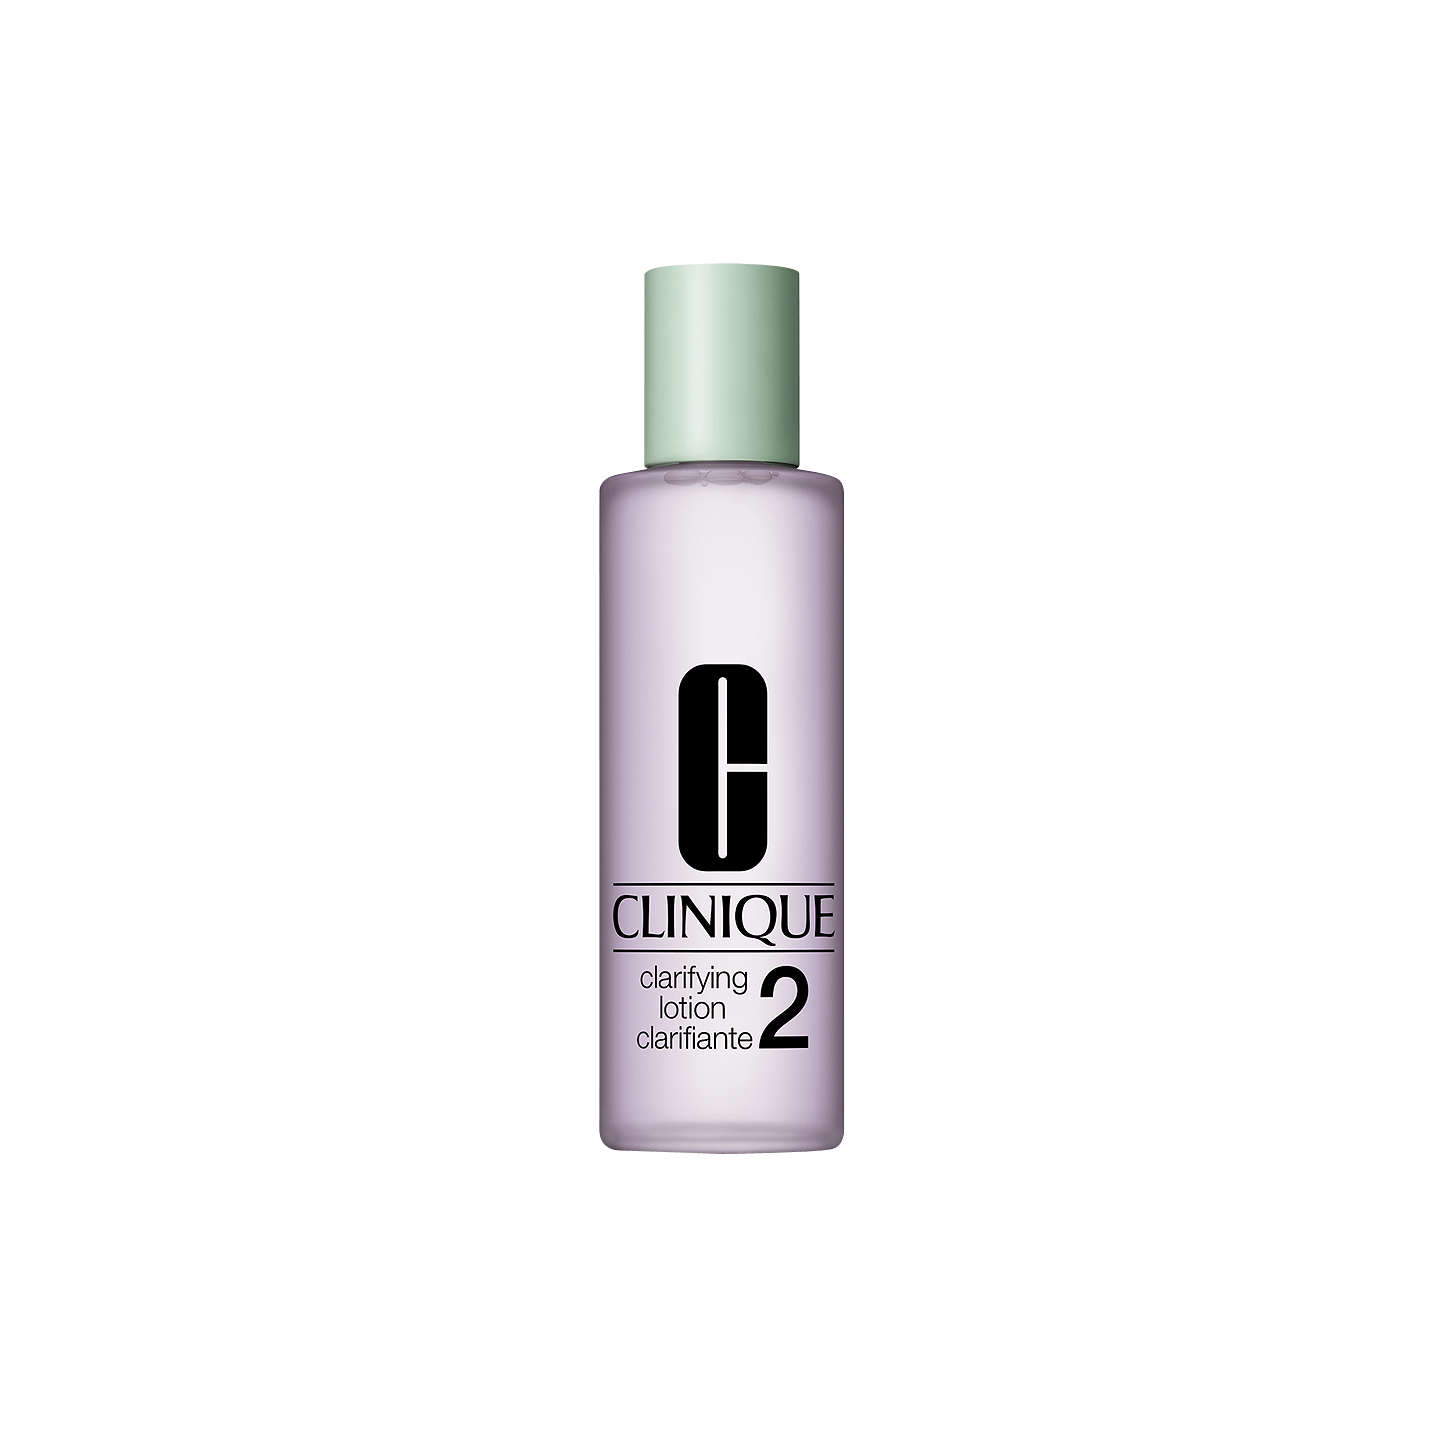 BuyClinique Clarifying Lotion 2, 400ml Online at johnlewis.com